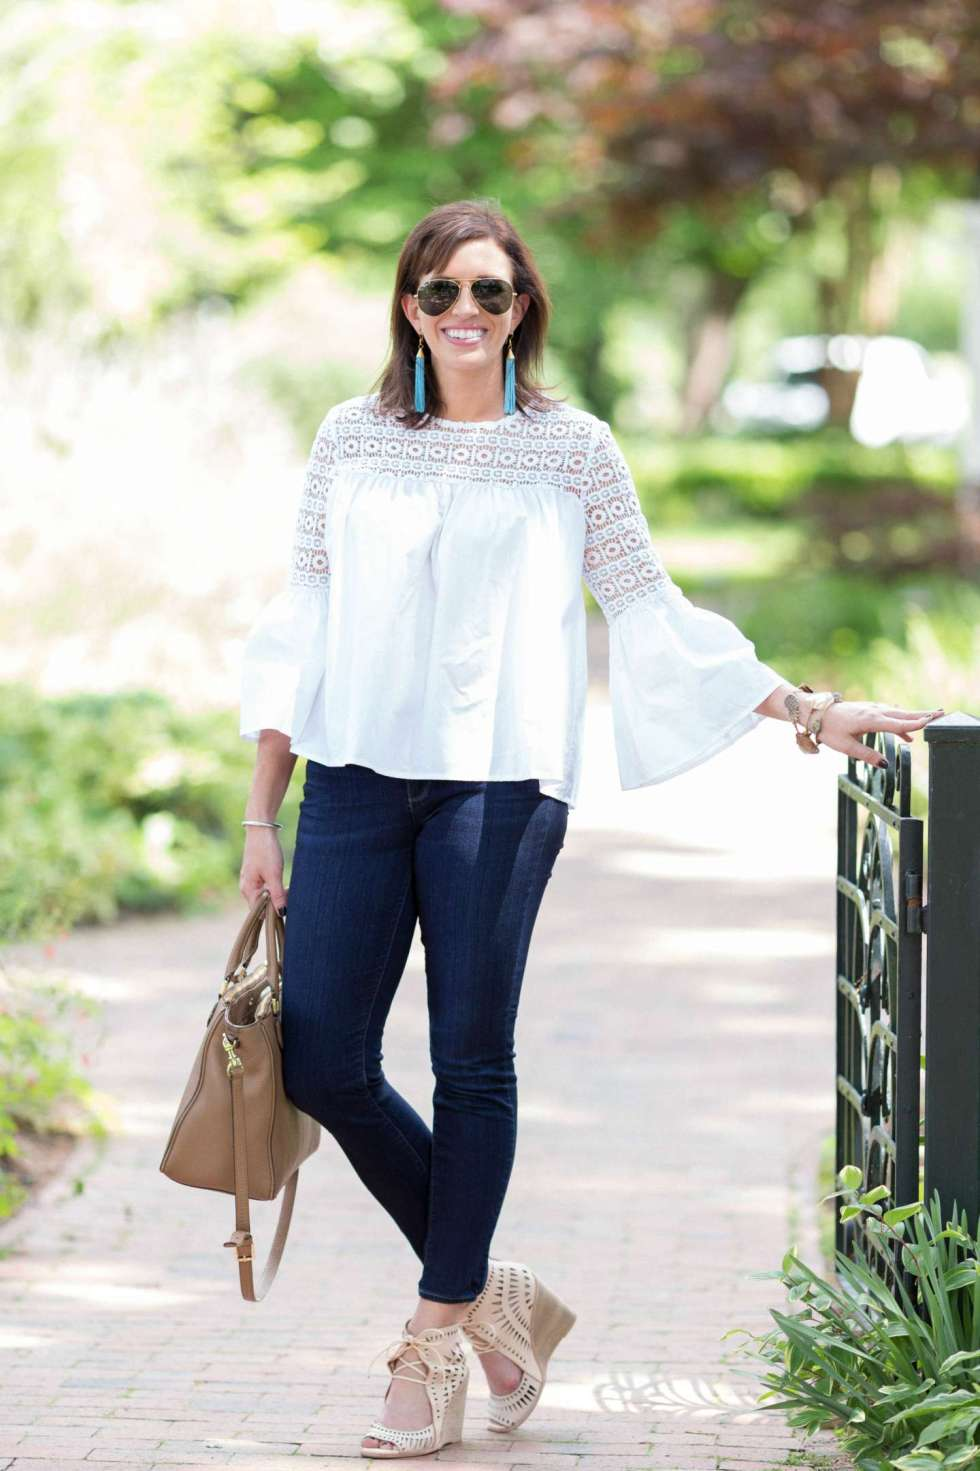 White Lace Top for Date Night at Fearrington Village - I'm Fixin' To - @mbg0112